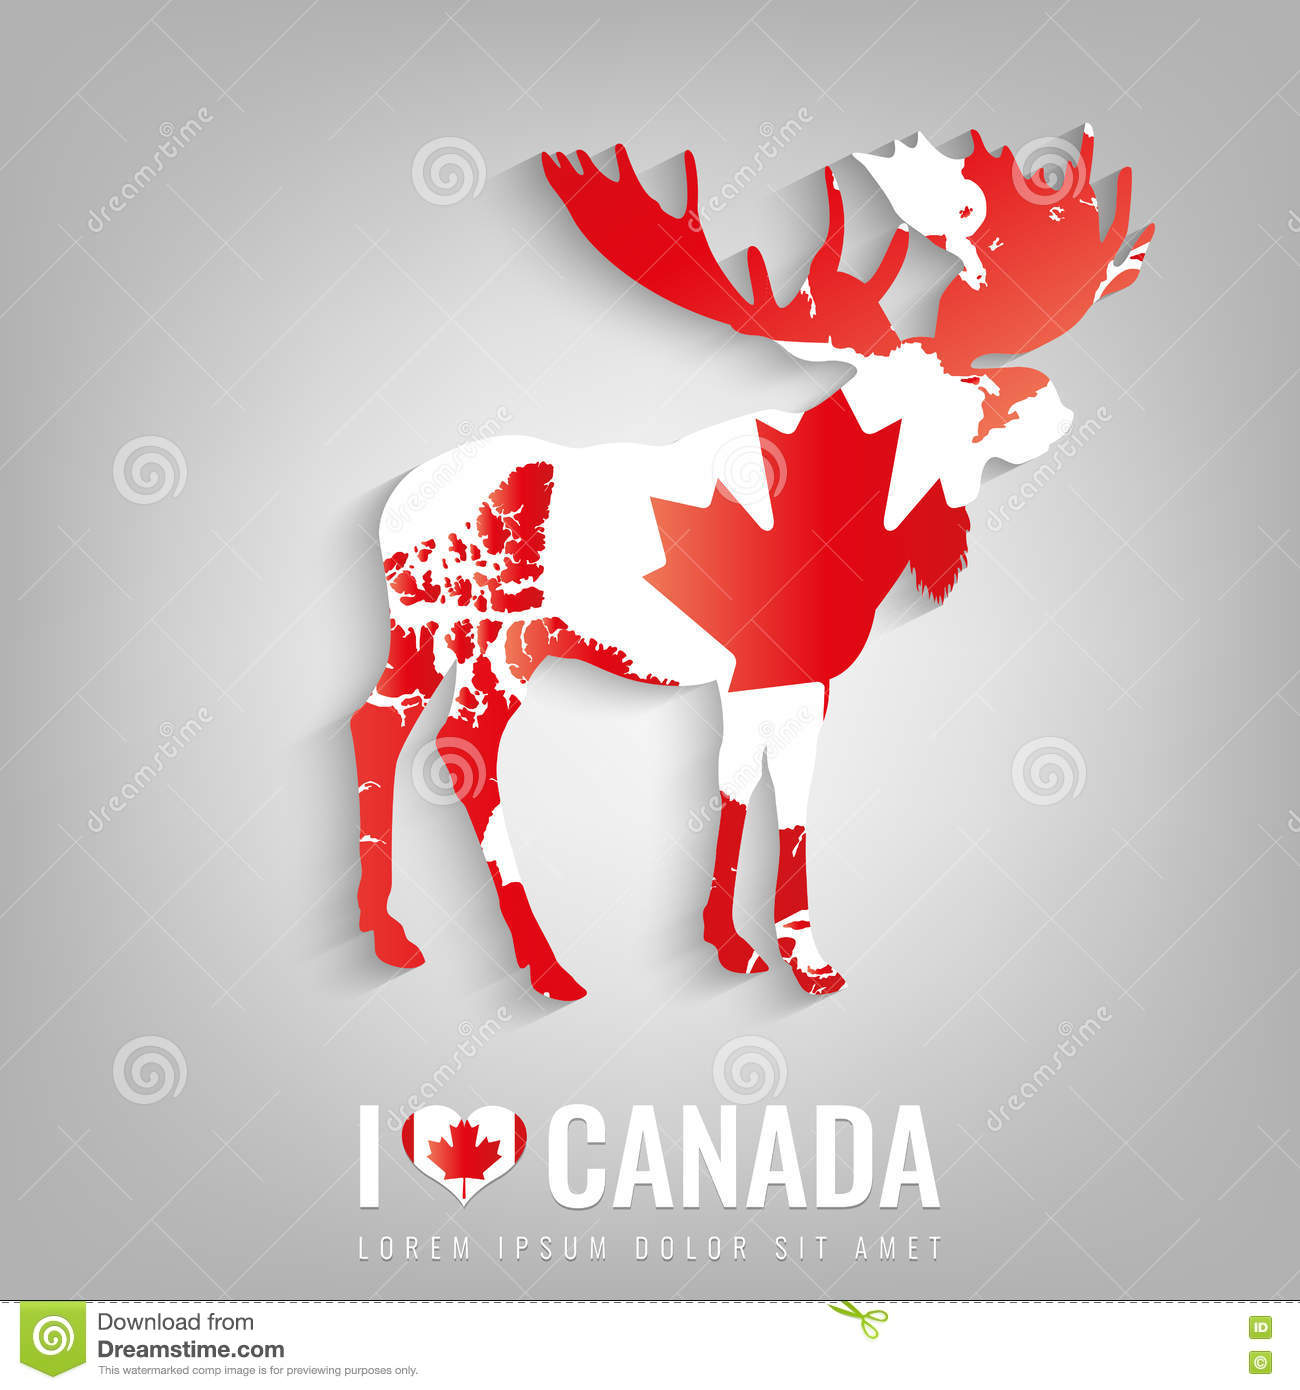 Canada Location On The North America Map Map Of America And - Canada north america map